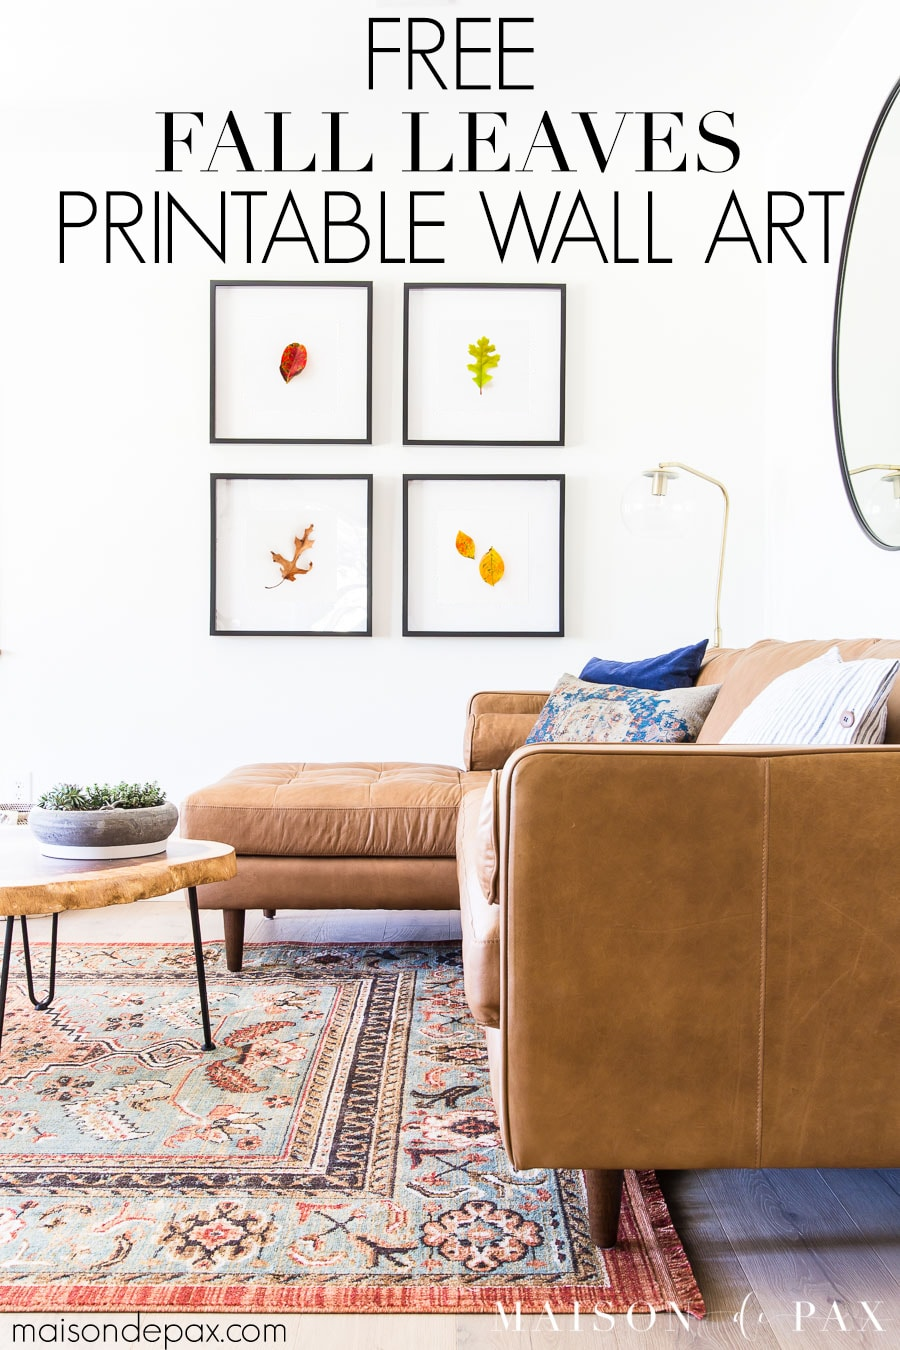 white walls with colorful leaf wall art and overlay: free fall leaves printable wall art   Maison de Pax